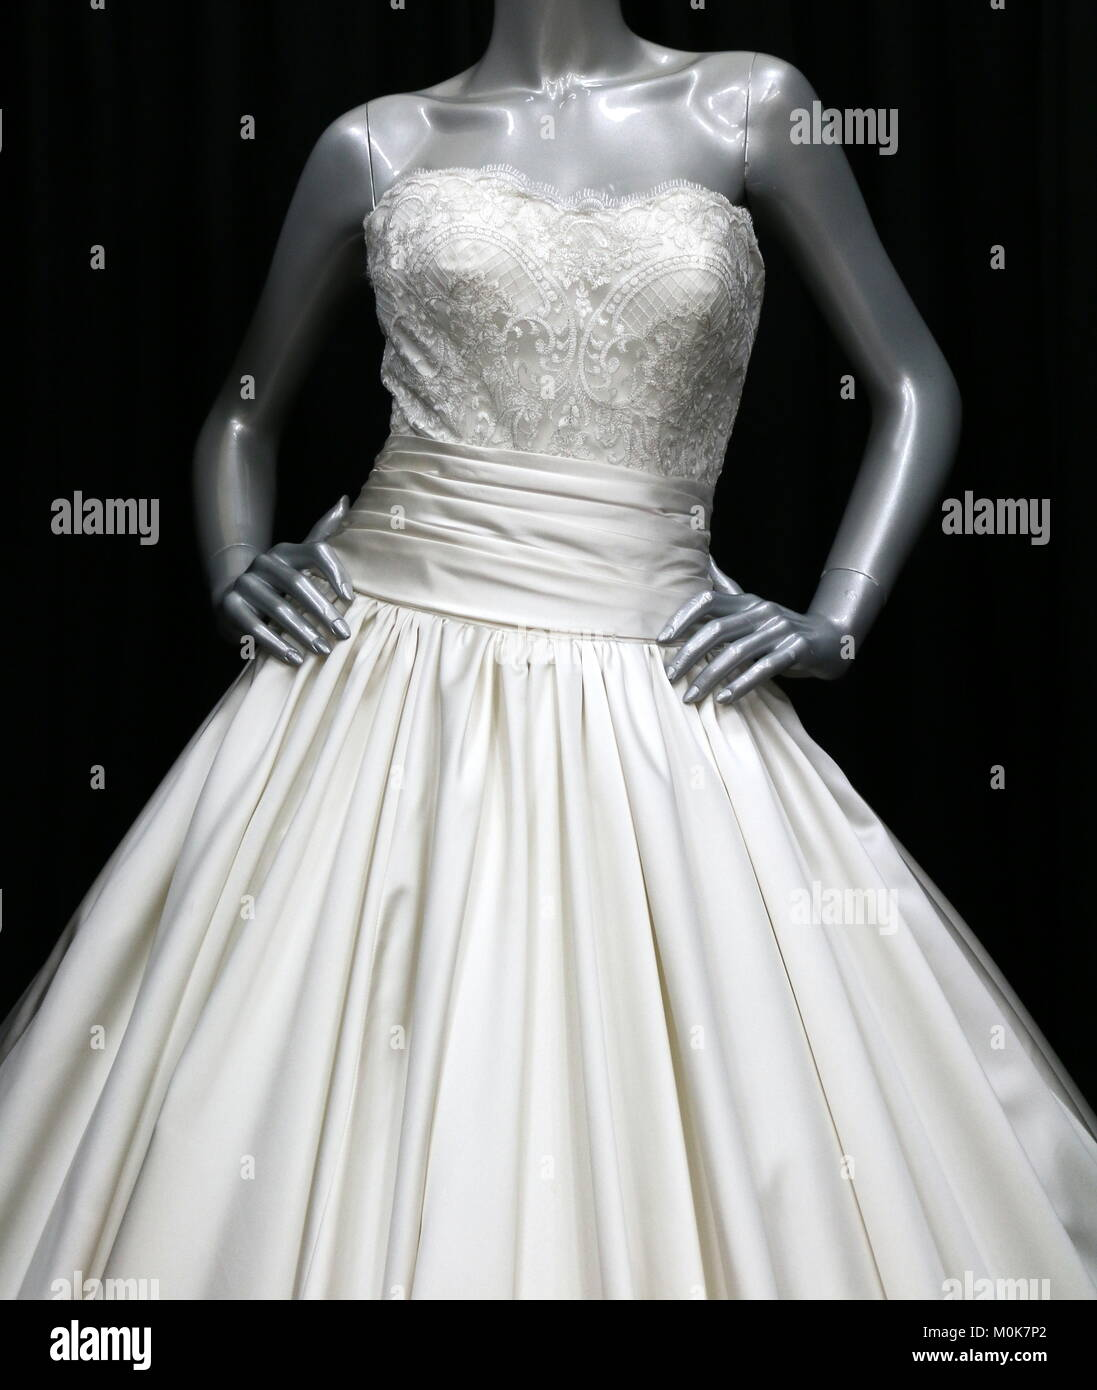 Strapless Gown Stockfotos & Strapless Gown Bilder - Alamy